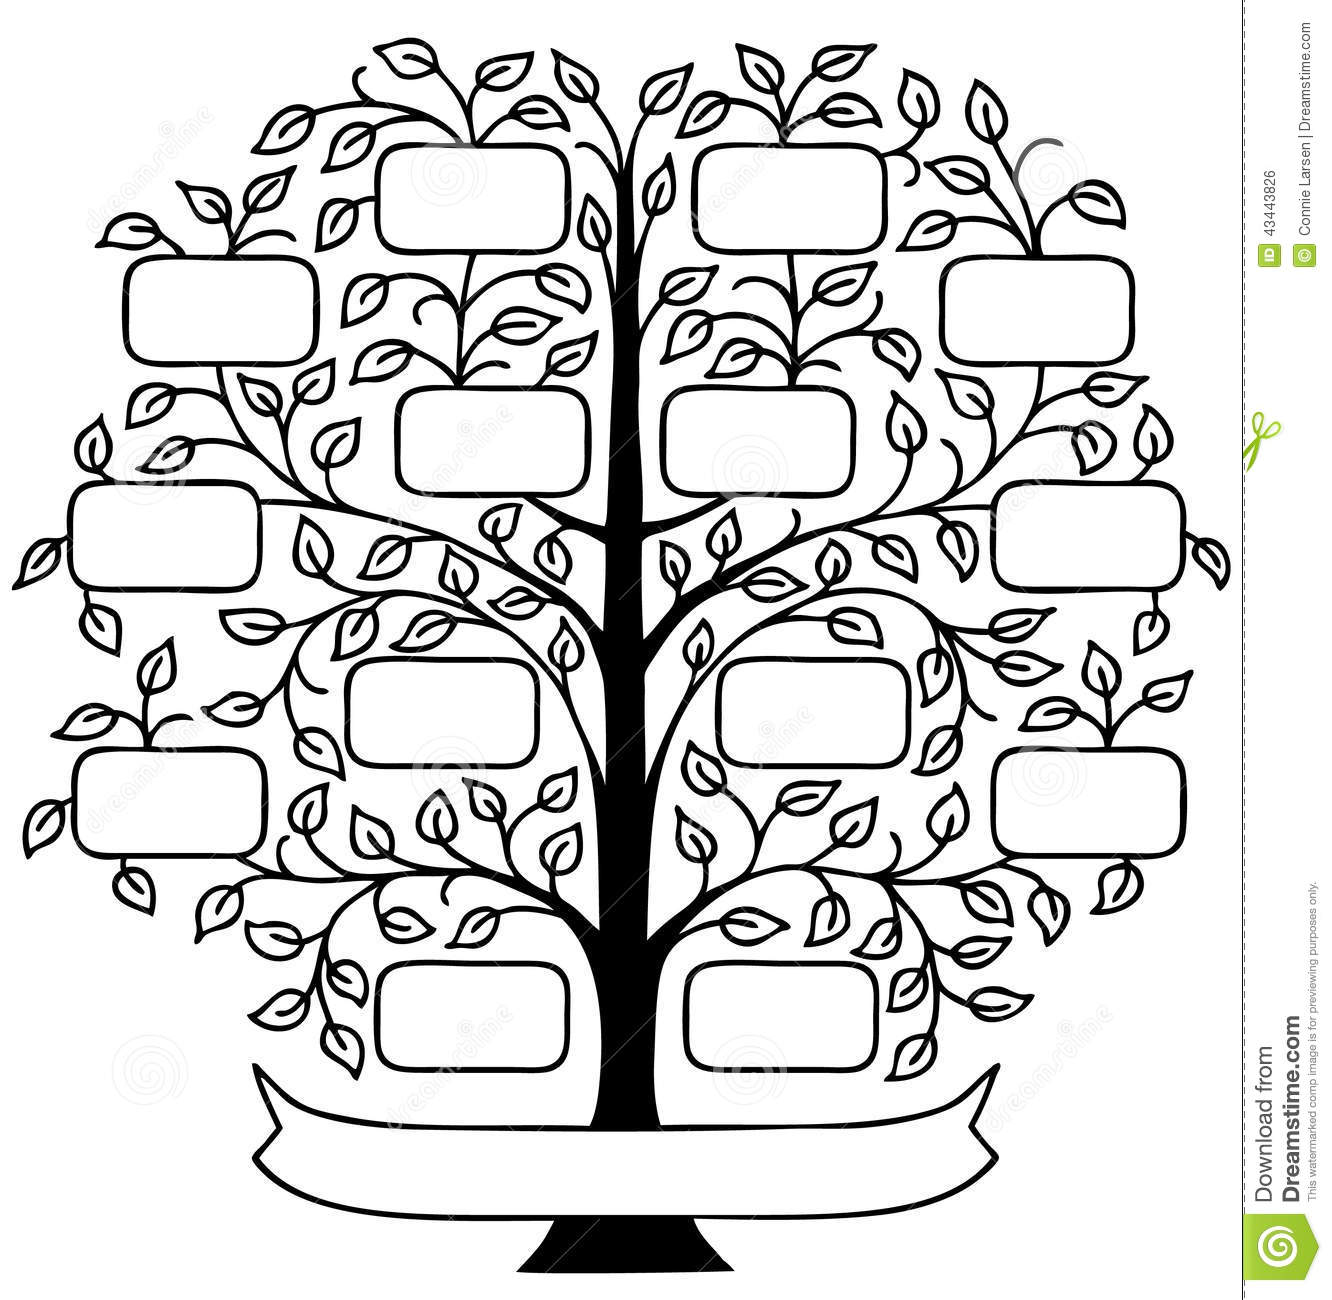 Arbre Genealogique Illustration De Vecteur Illustration Du Arbre